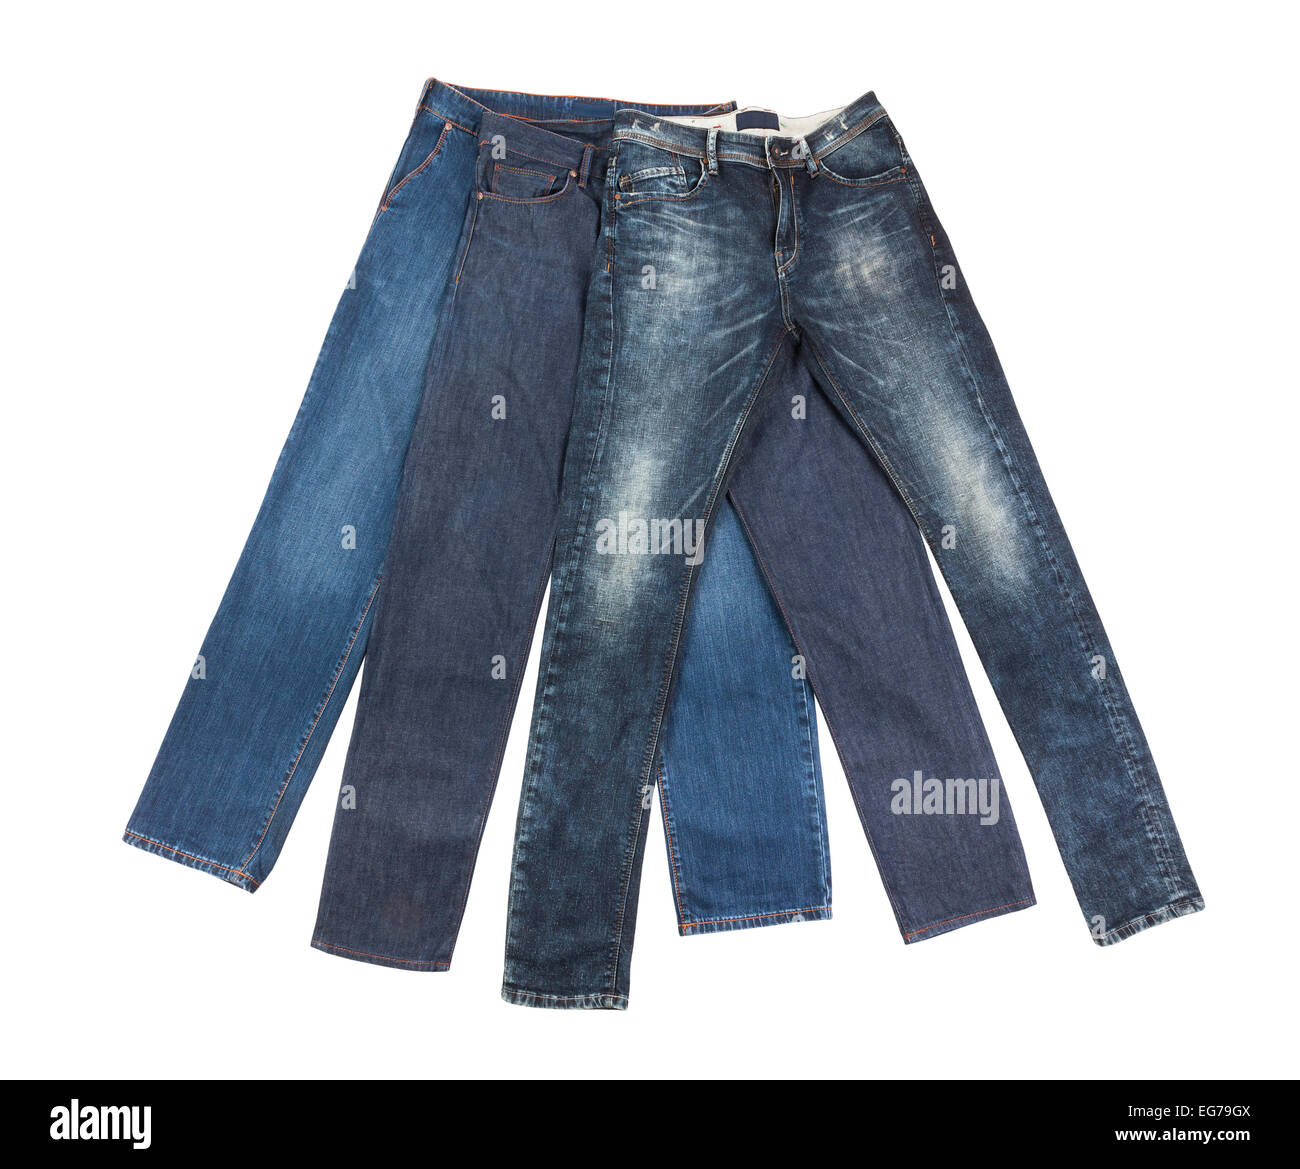 Denim Jeans isolated Photo Stock